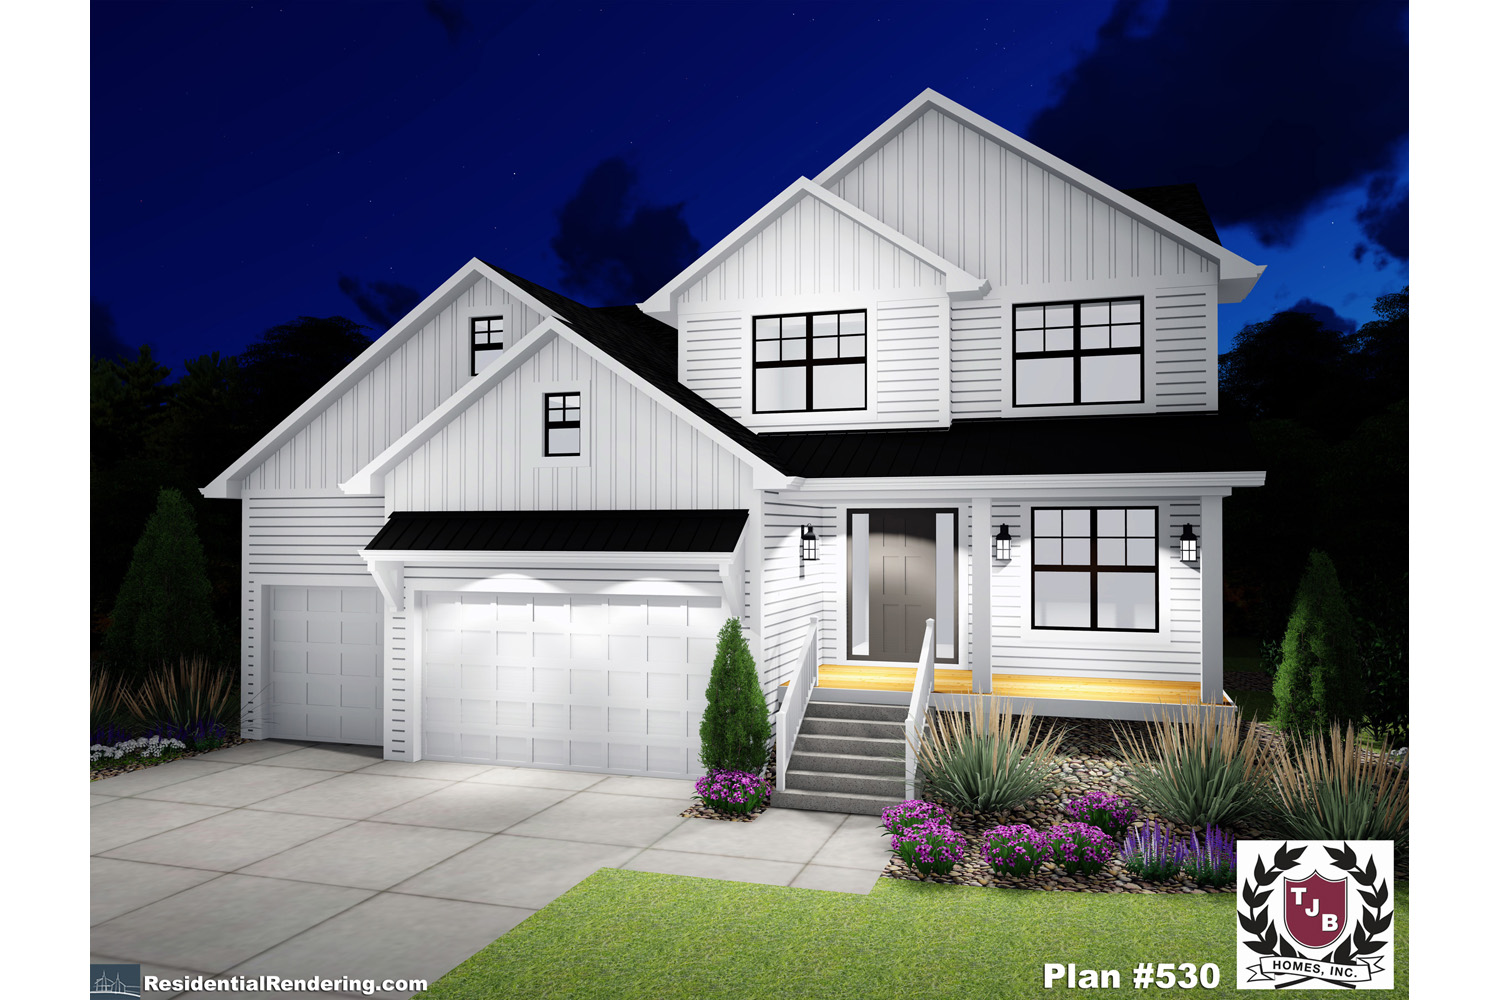 Home Plan Front Color Rendering Night View